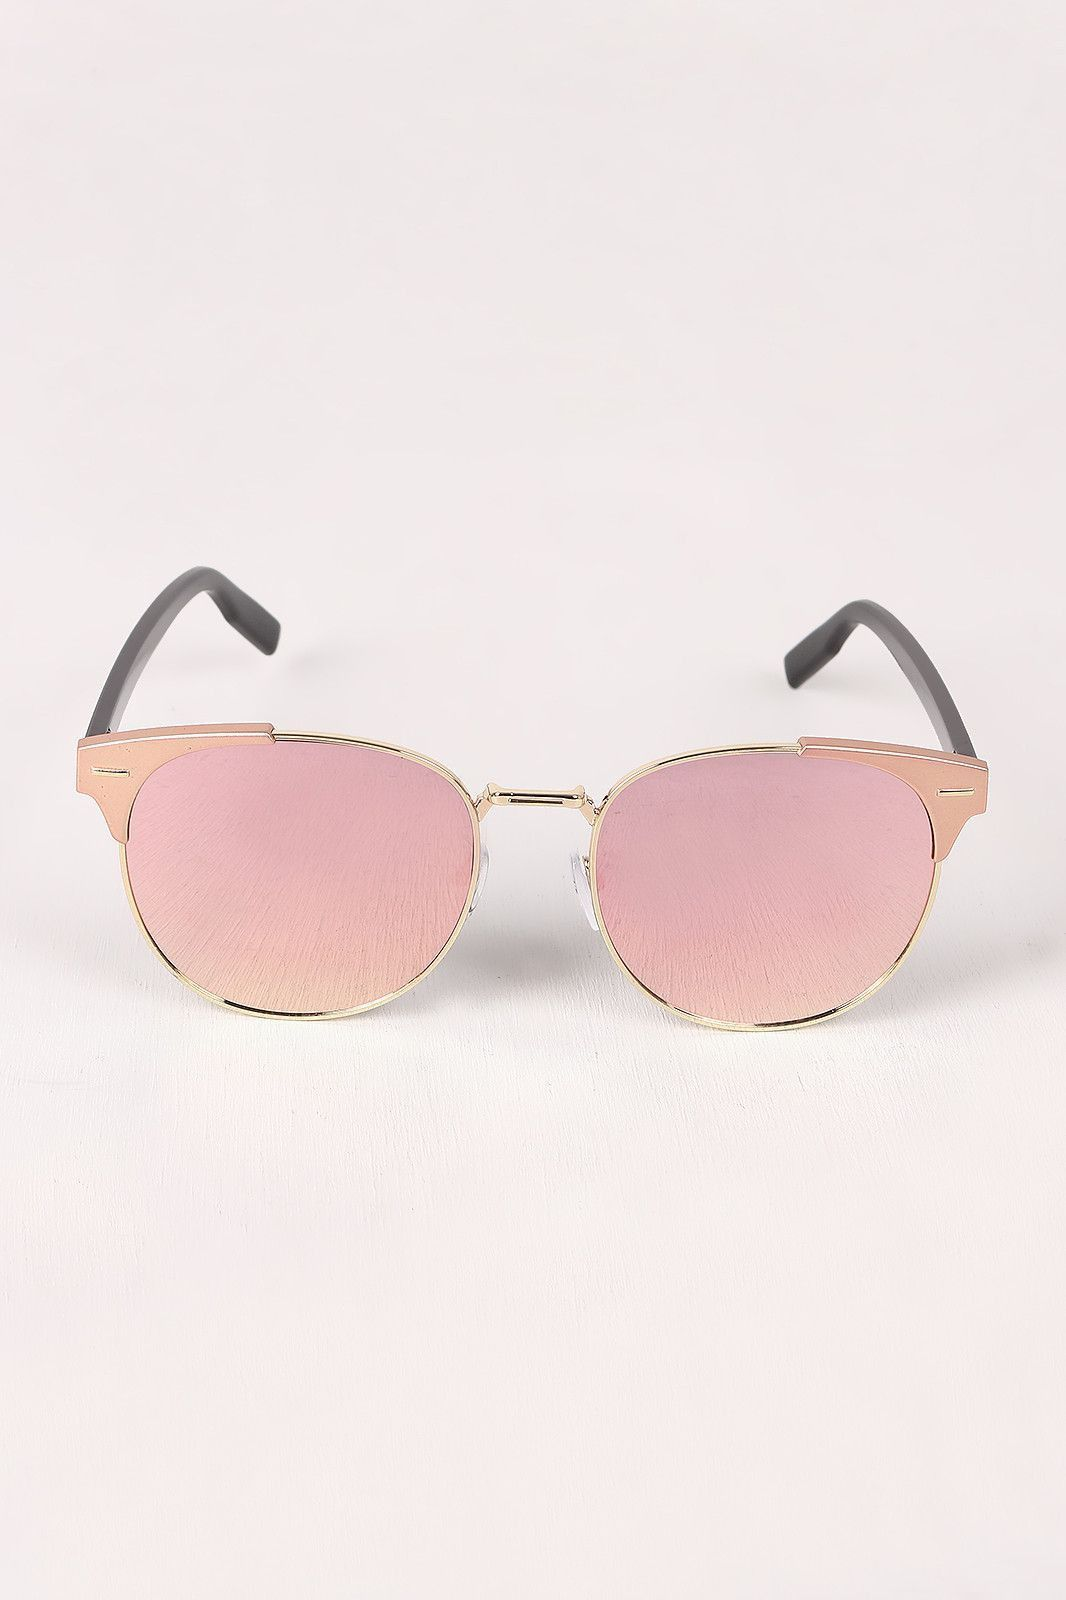 biggest discount latest design on feet shots of 17 Newest Clubmaster Sunglasses Cheap Recommendations ...